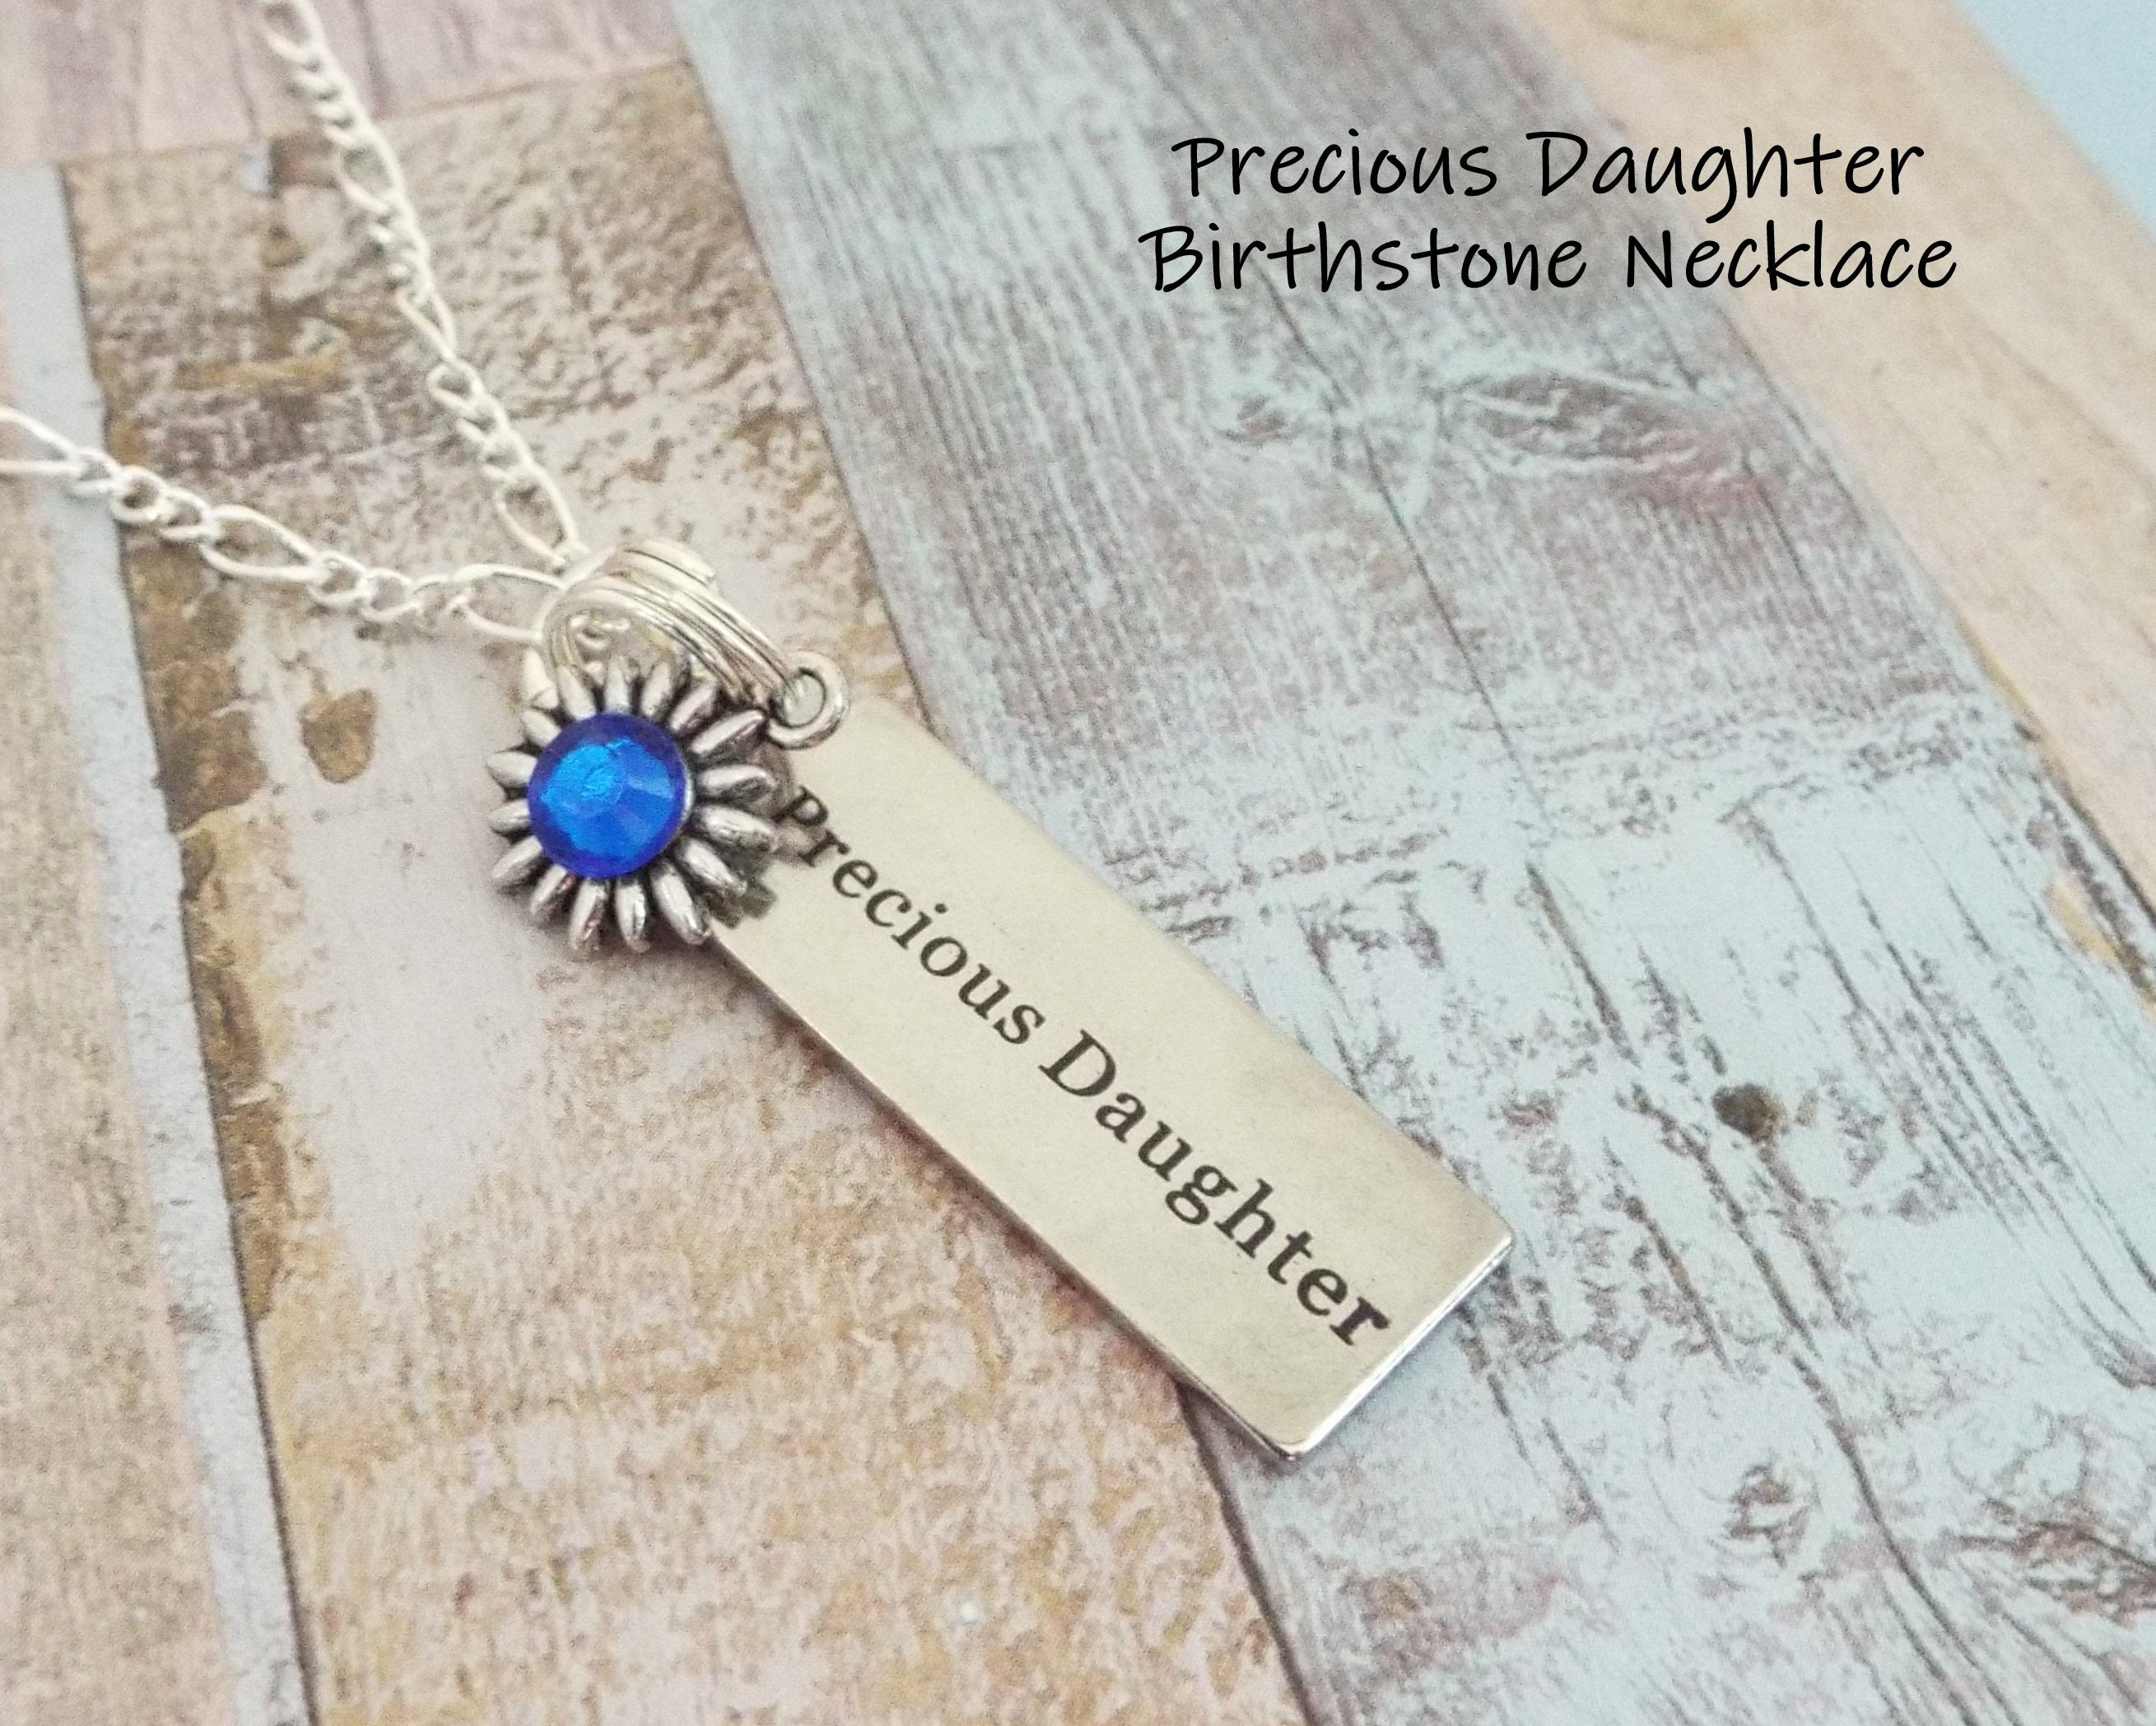 Mother Daughter Gift From Dad To Birthday Birthstone Personalized Jewelry